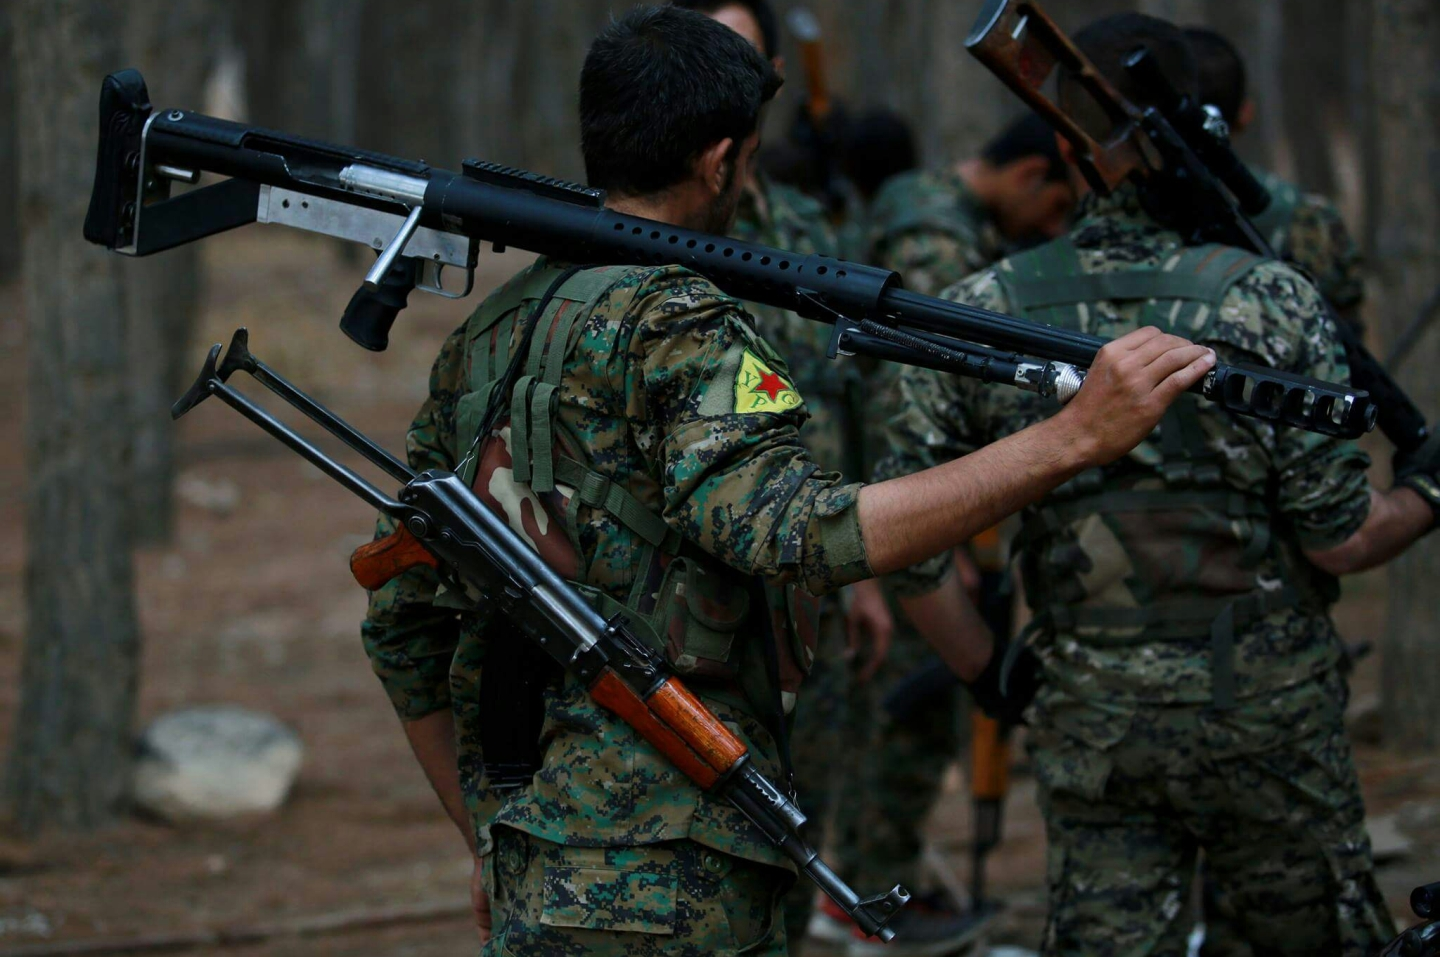 YPG fighters in the woods of Afrin Region during Operation Olive Branch.